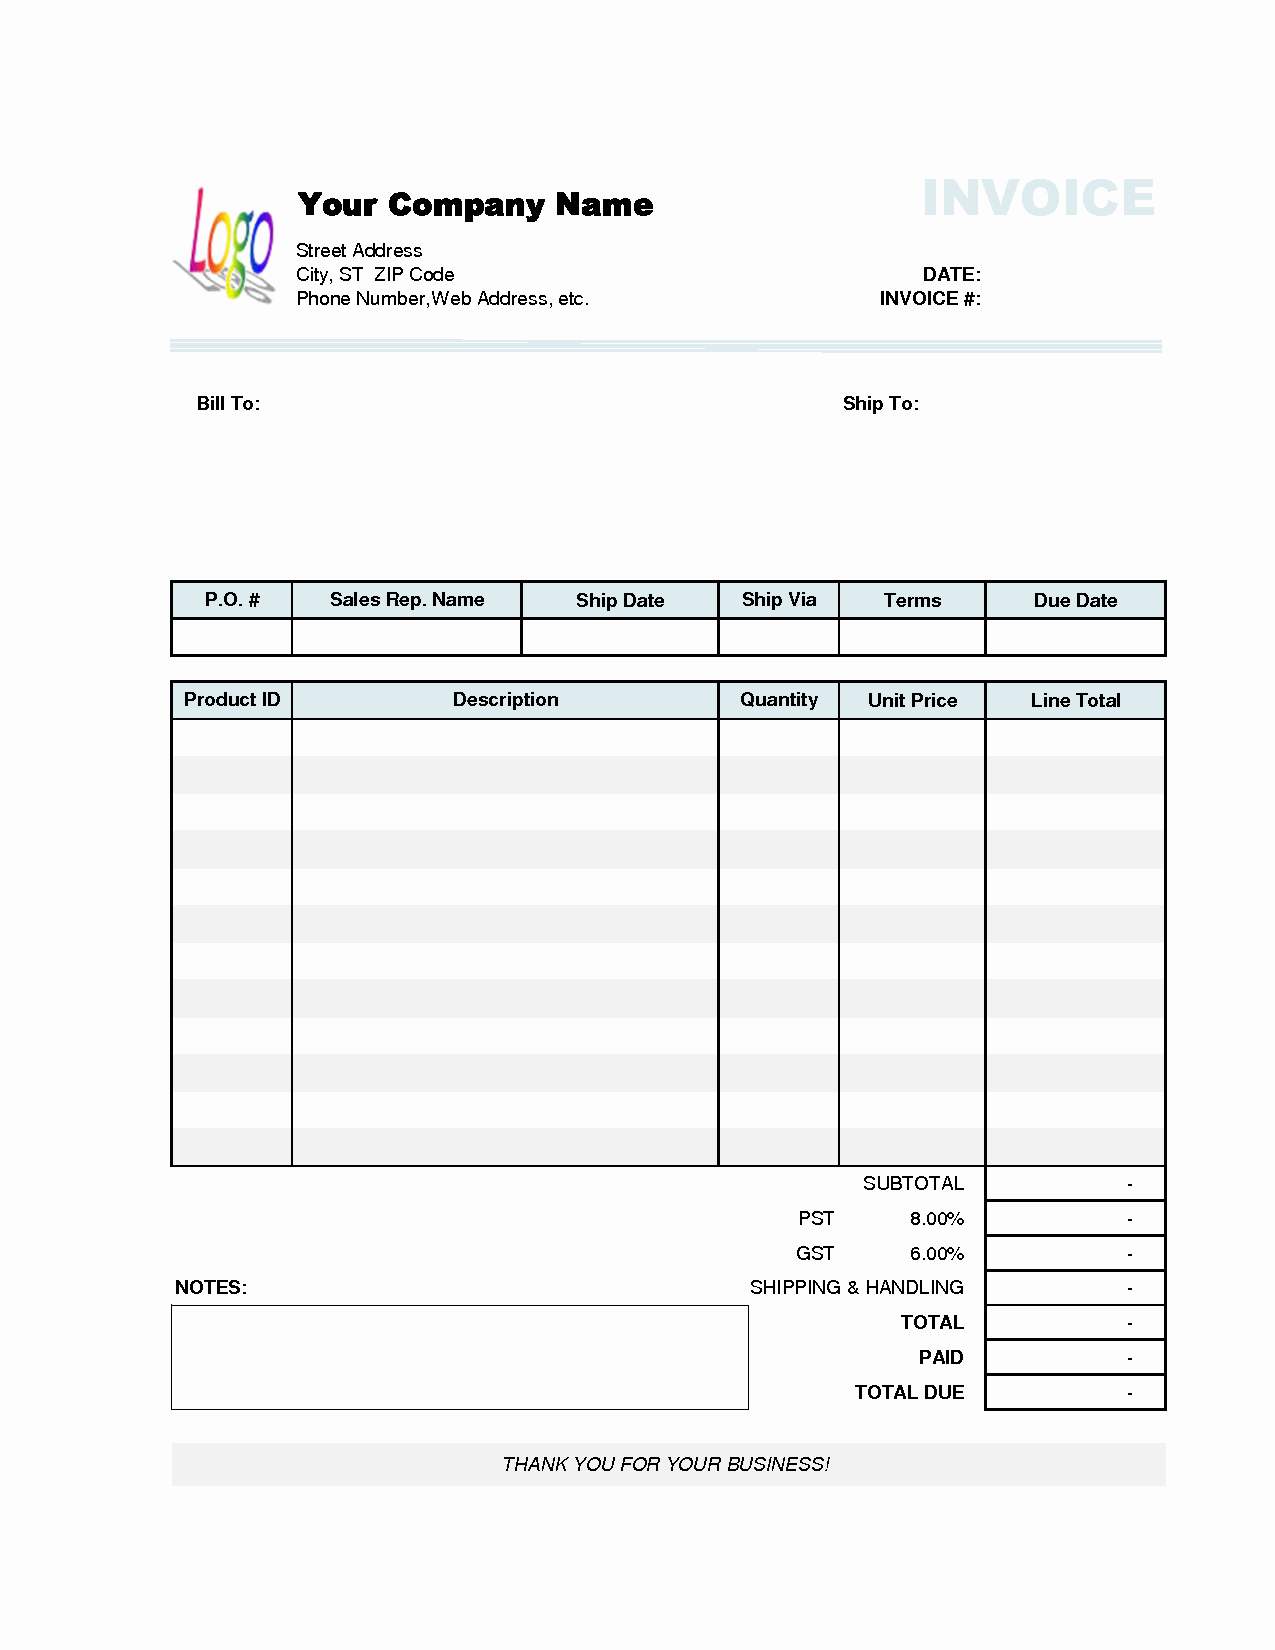 Simple Invoice Template Excel Lovely Invoice Template Excel 2010